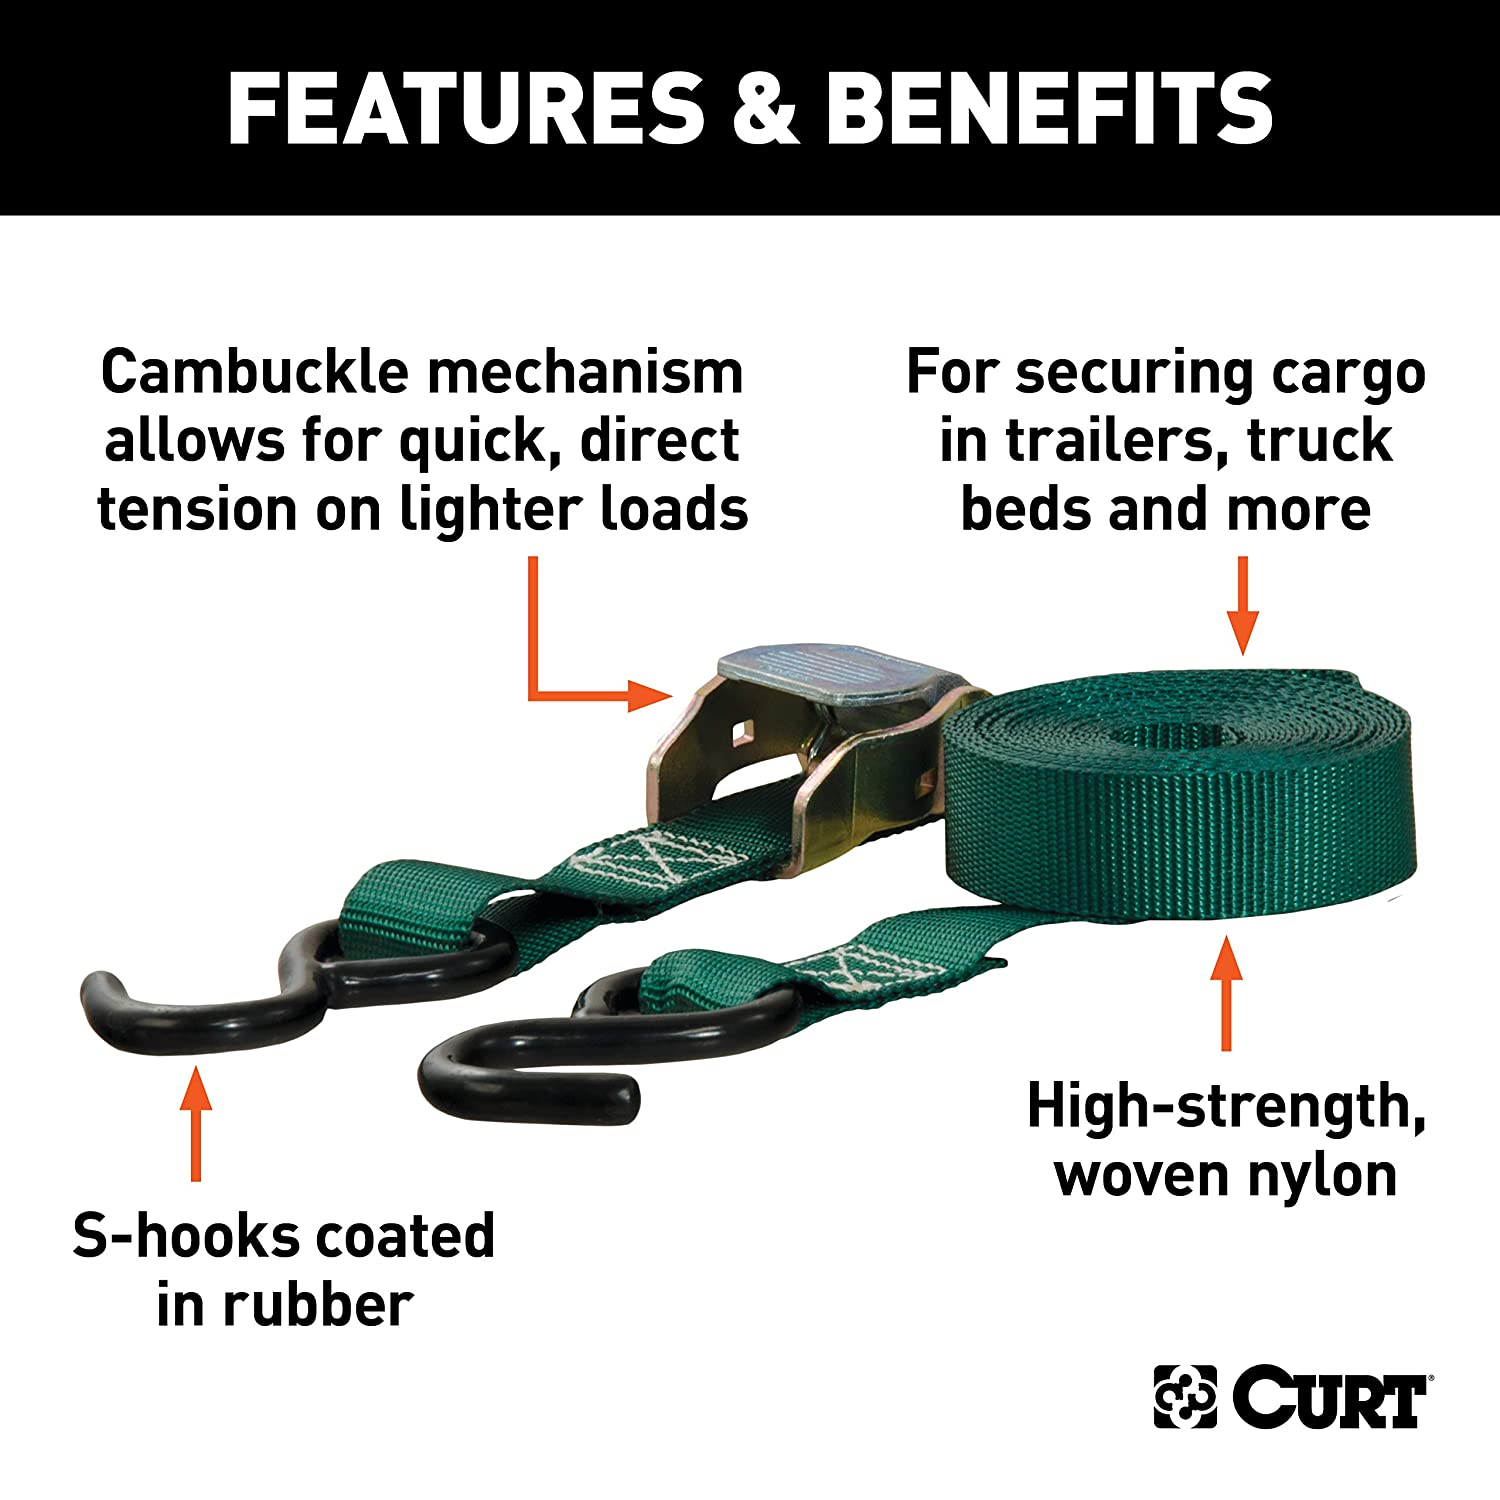 Break Strength Pack of 2 CURT 83015 1-Inch x 15-Foot Dark Green Nylon Cam Buckle Cargo Straps with S Hooks 900 lbs